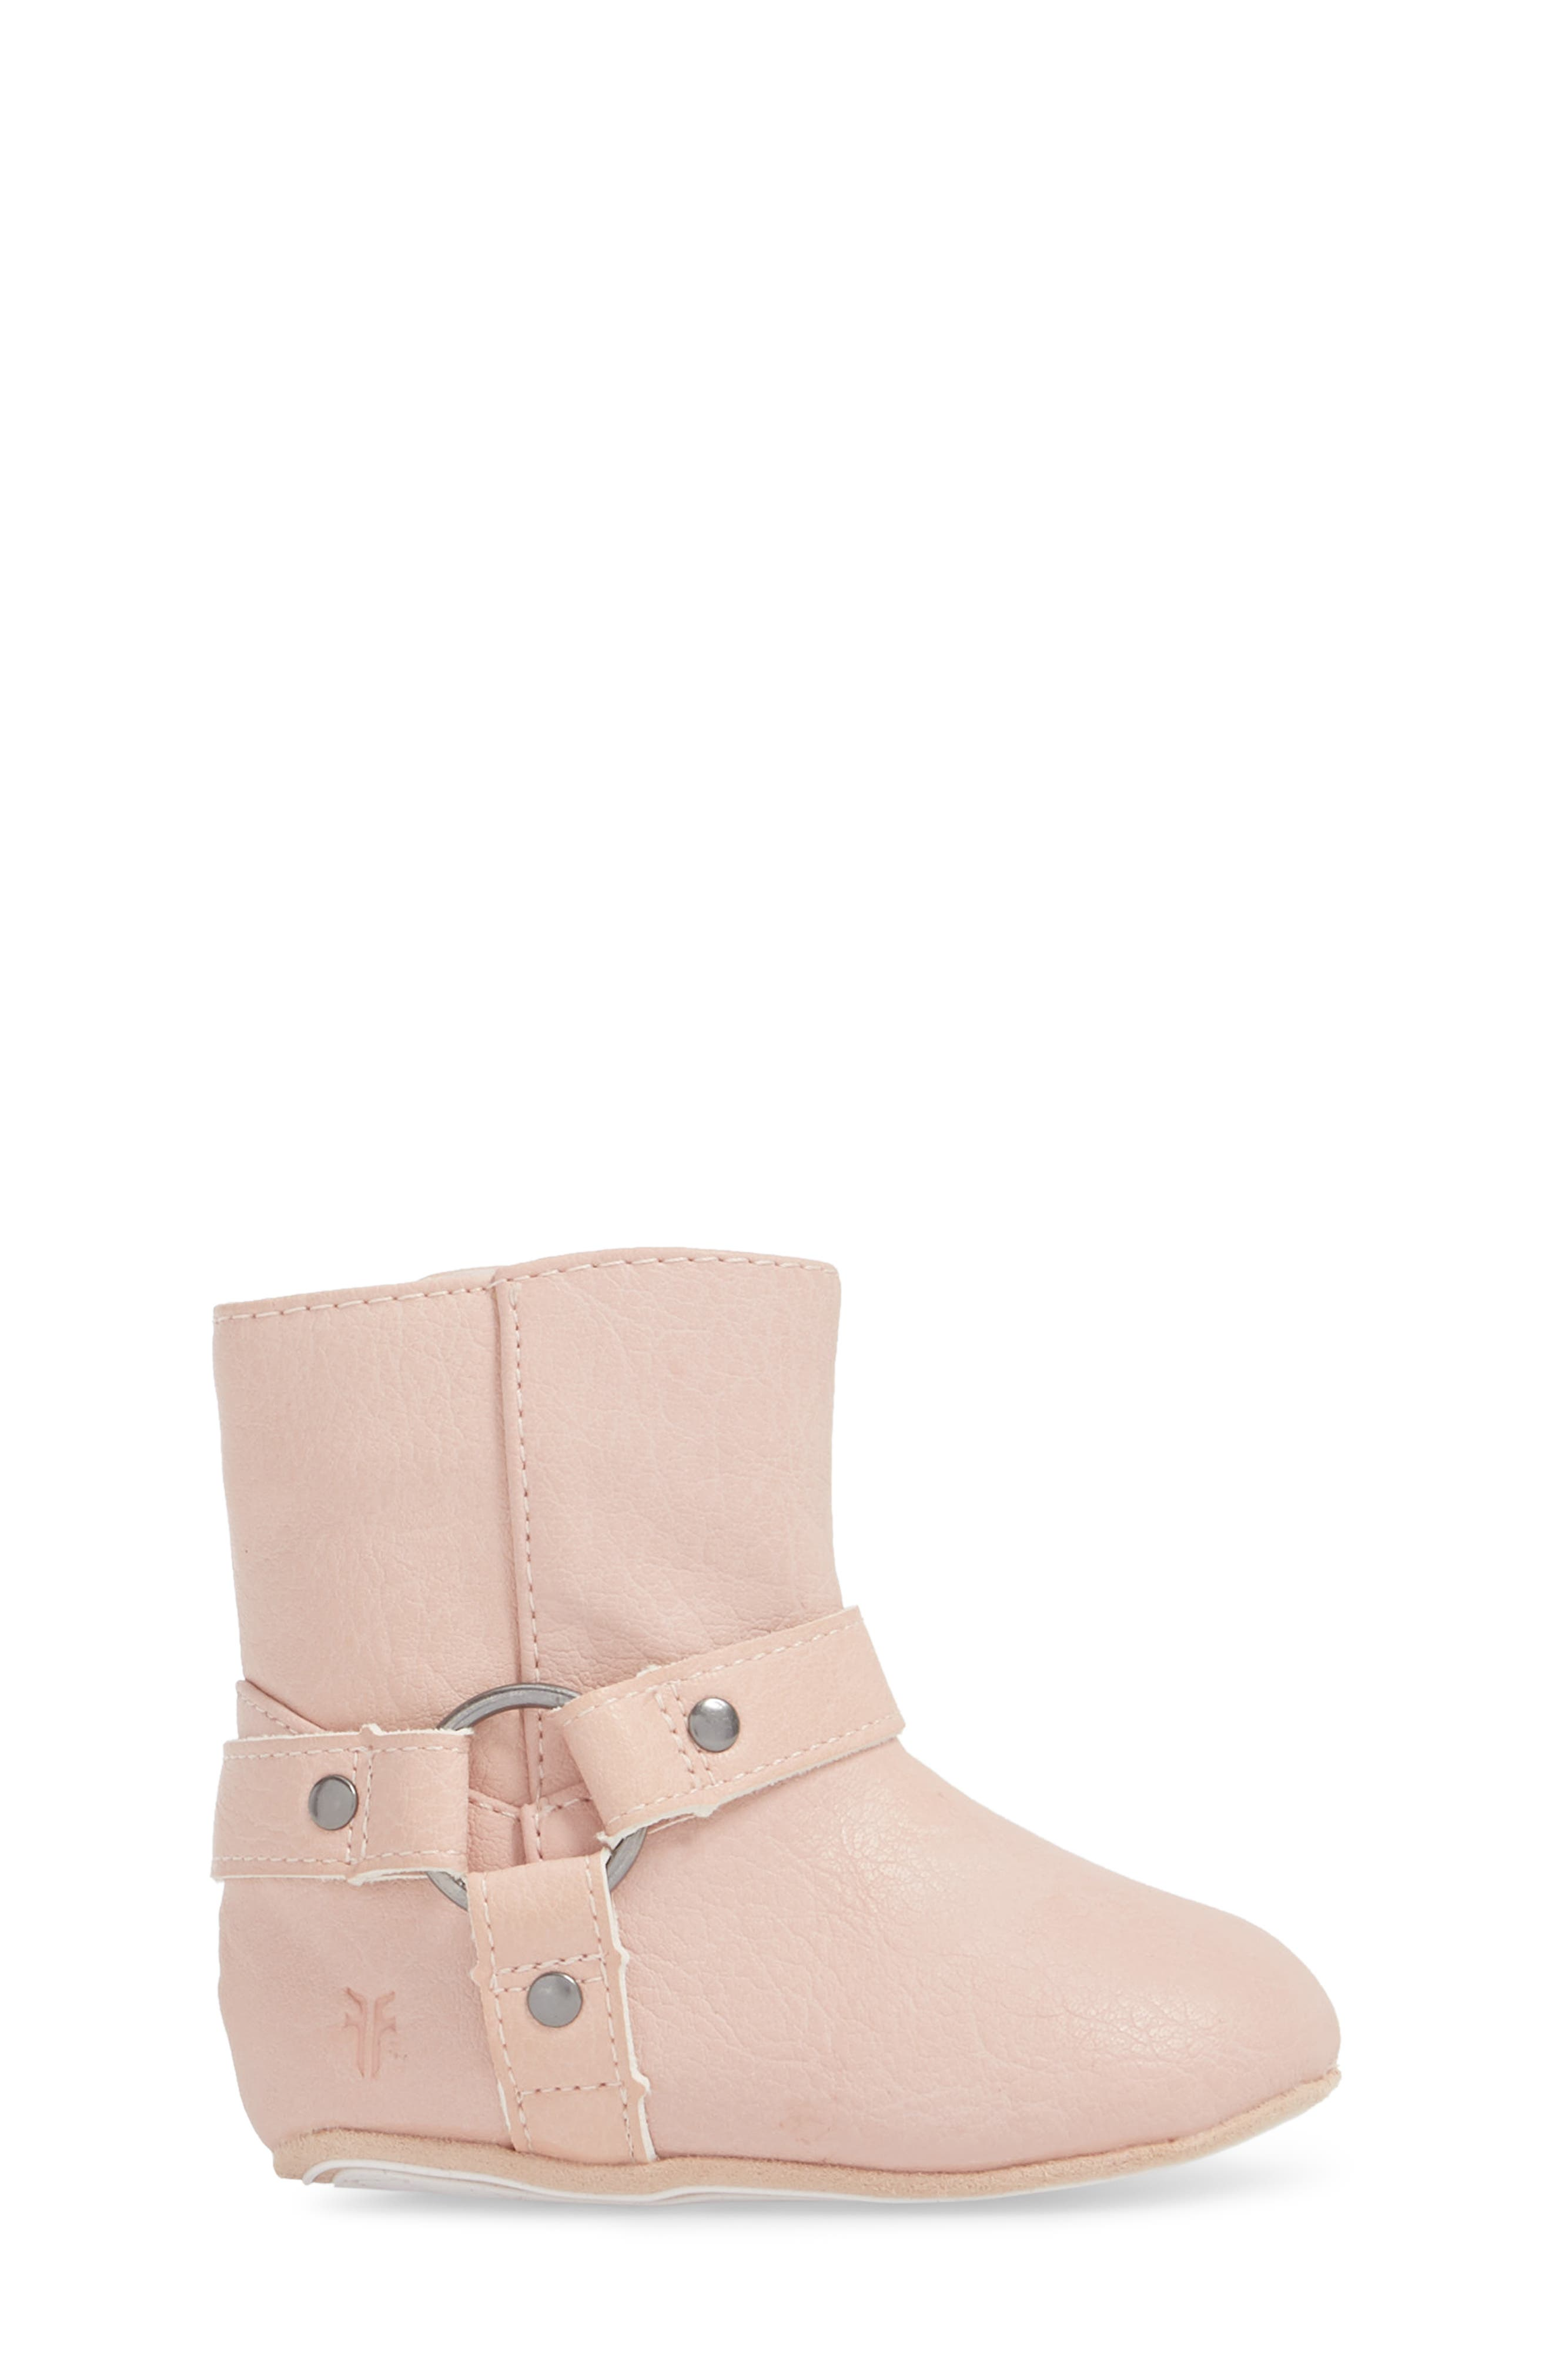 Harness Boot Crib Shoe,                             Alternate thumbnail 3, color,                             Baby Pink